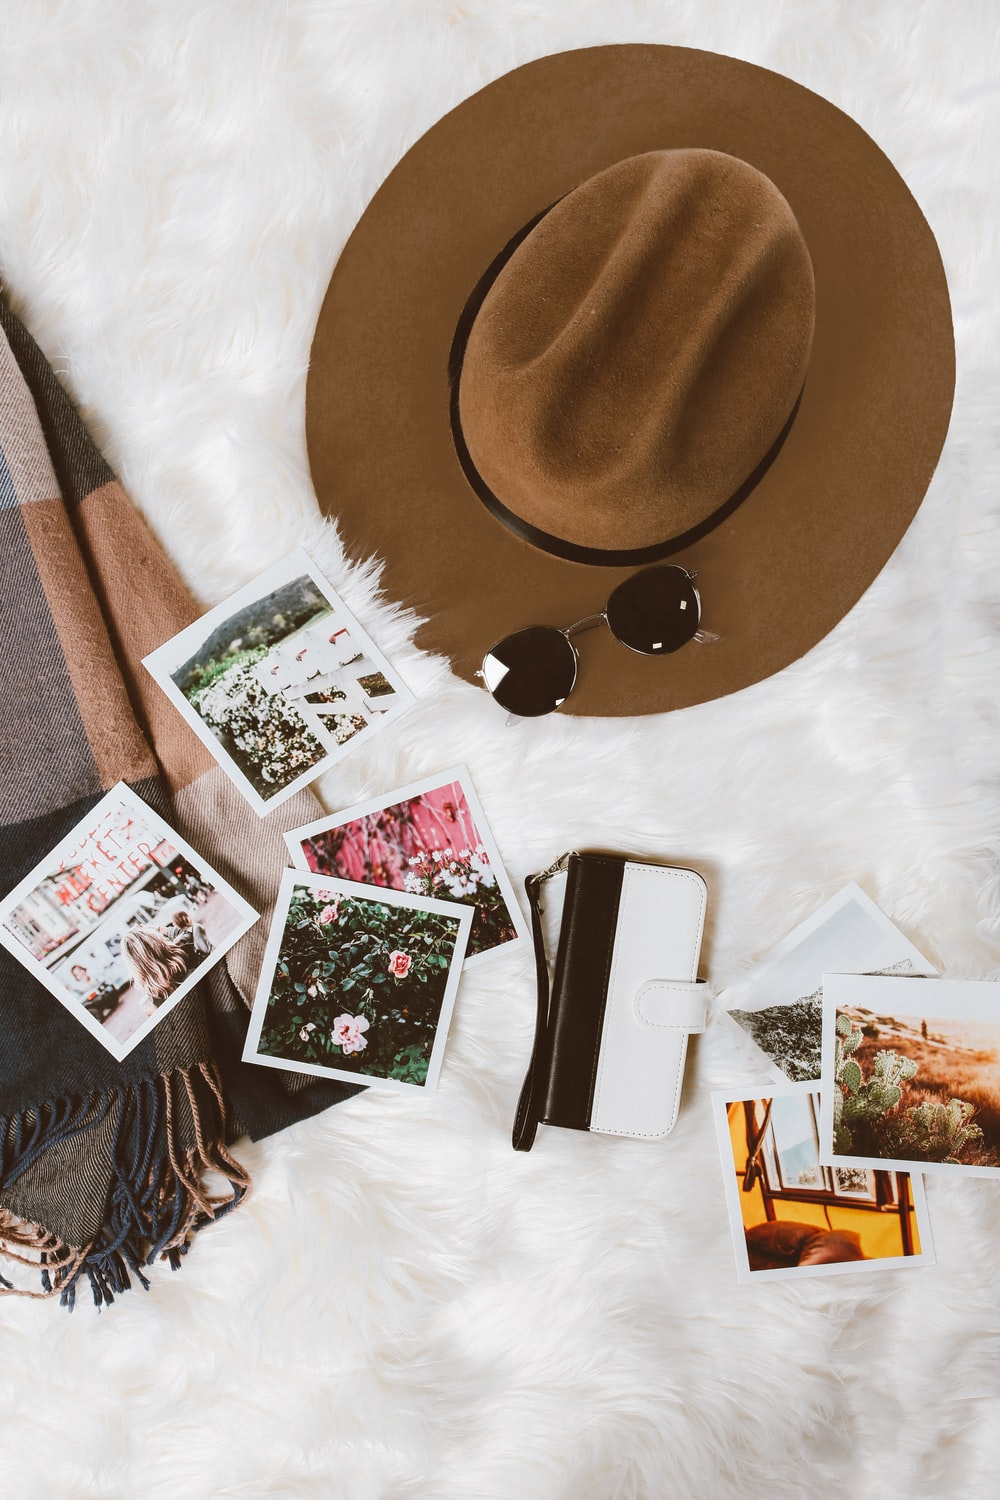 gold-colored framed sunglasses on brown hat beside white and black leather wristlet surrounded by photos on white and gray floral textile